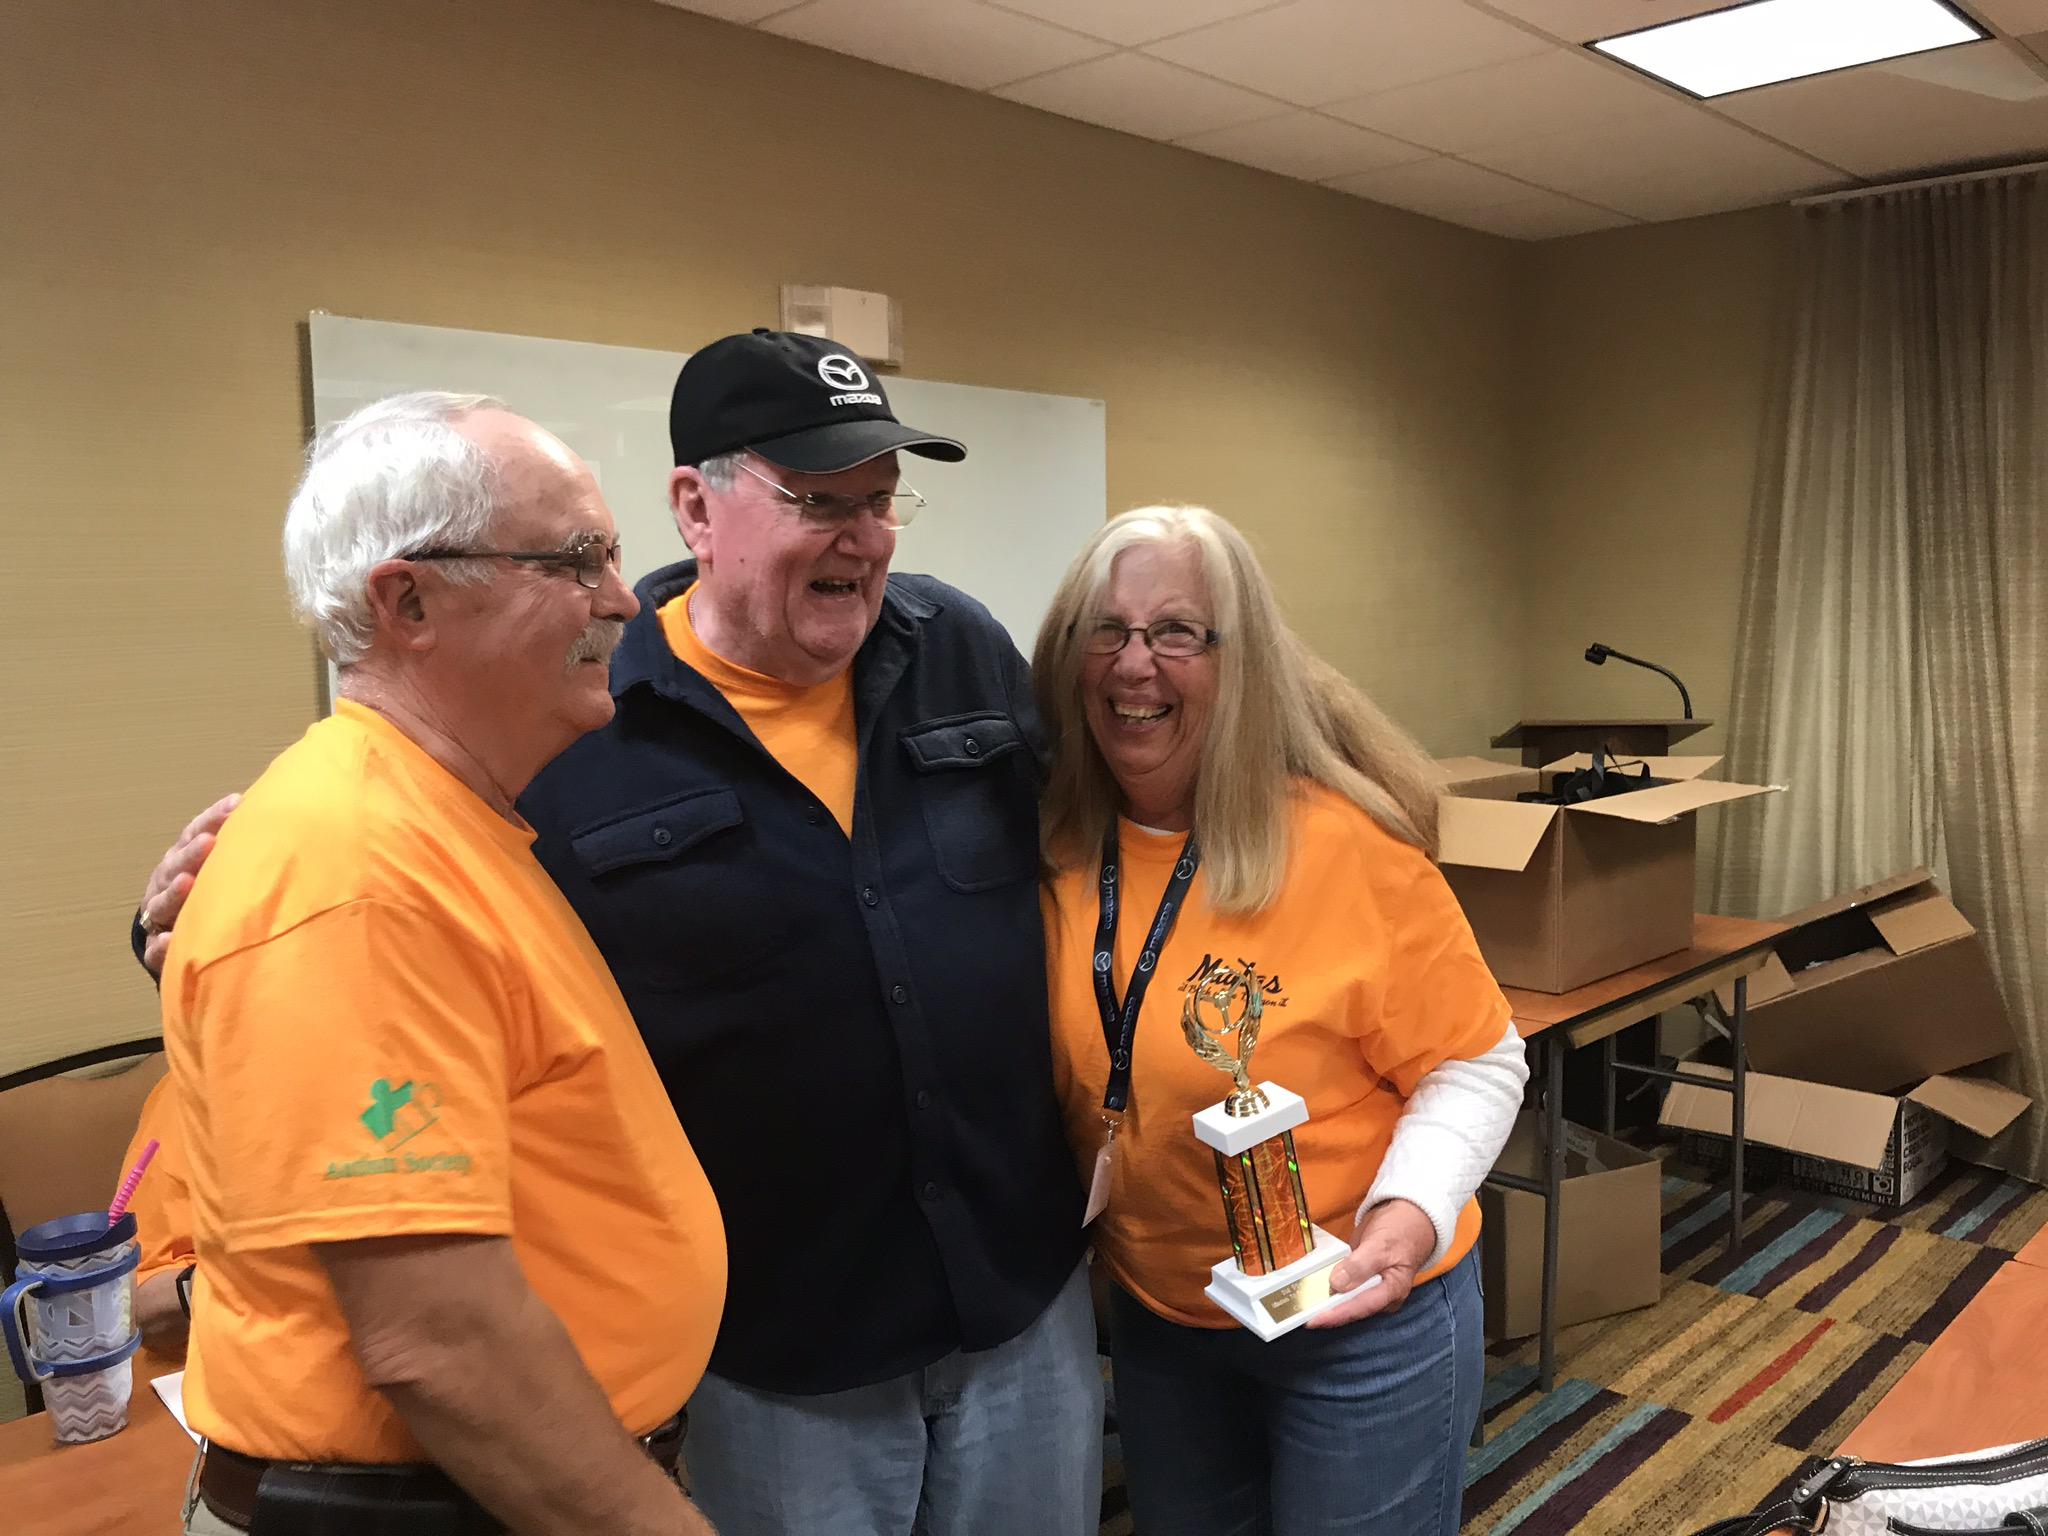 Jim presented 1st Place - ND division trophy to John & Pat Boyer.